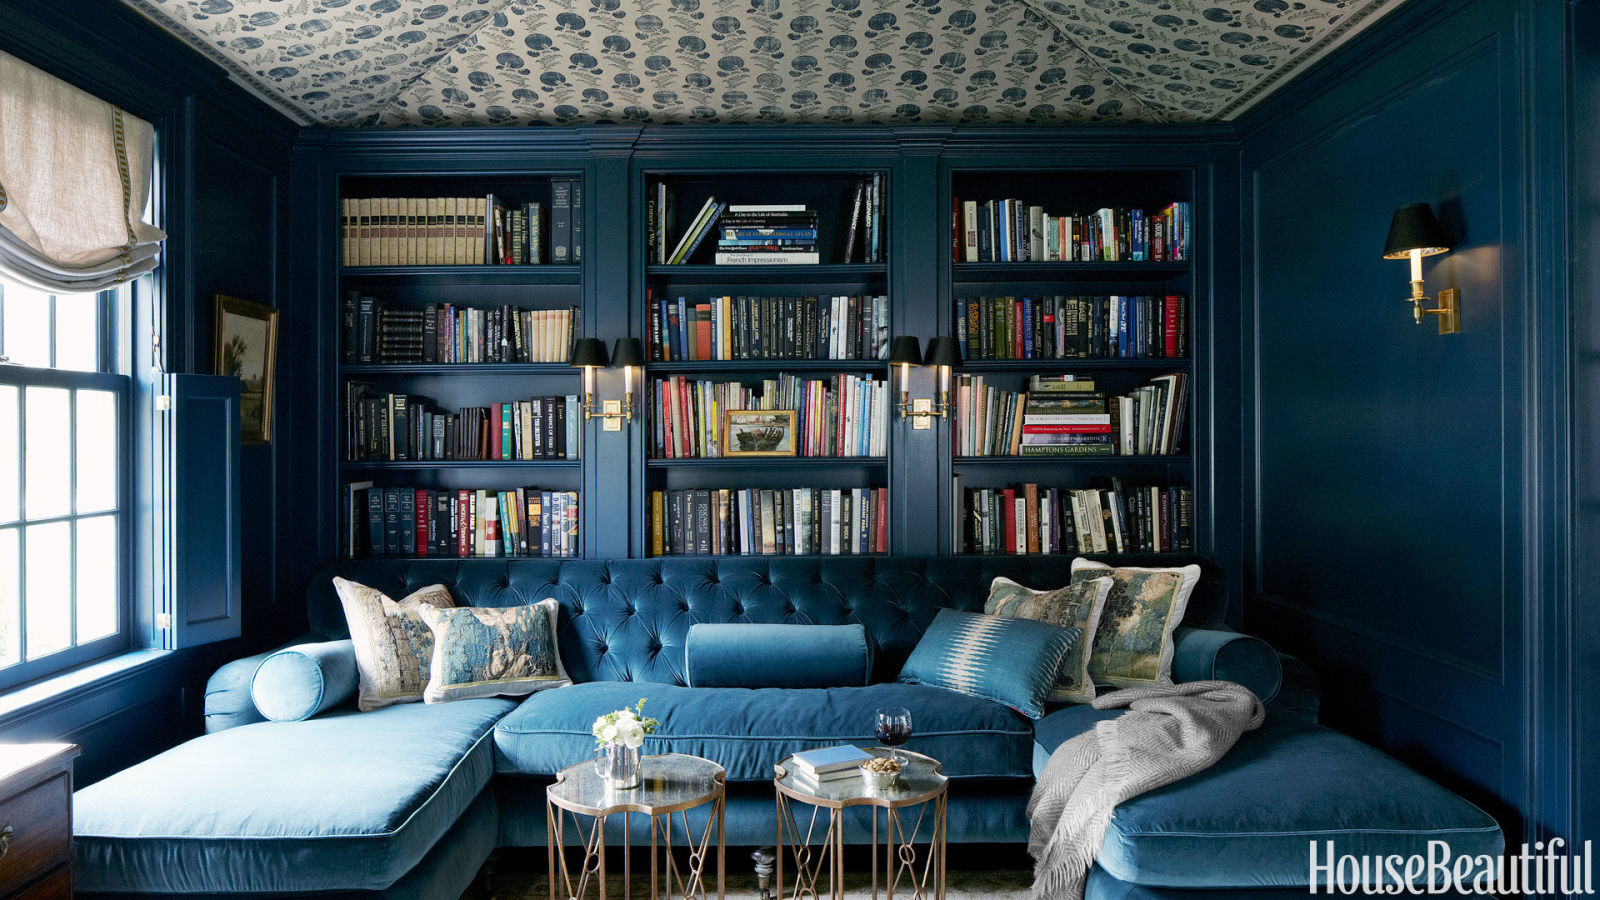 Pleasing Home Library Design Ideas Pictures Of Home Library Decor Largest Home Design Picture Inspirations Pitcheantrous